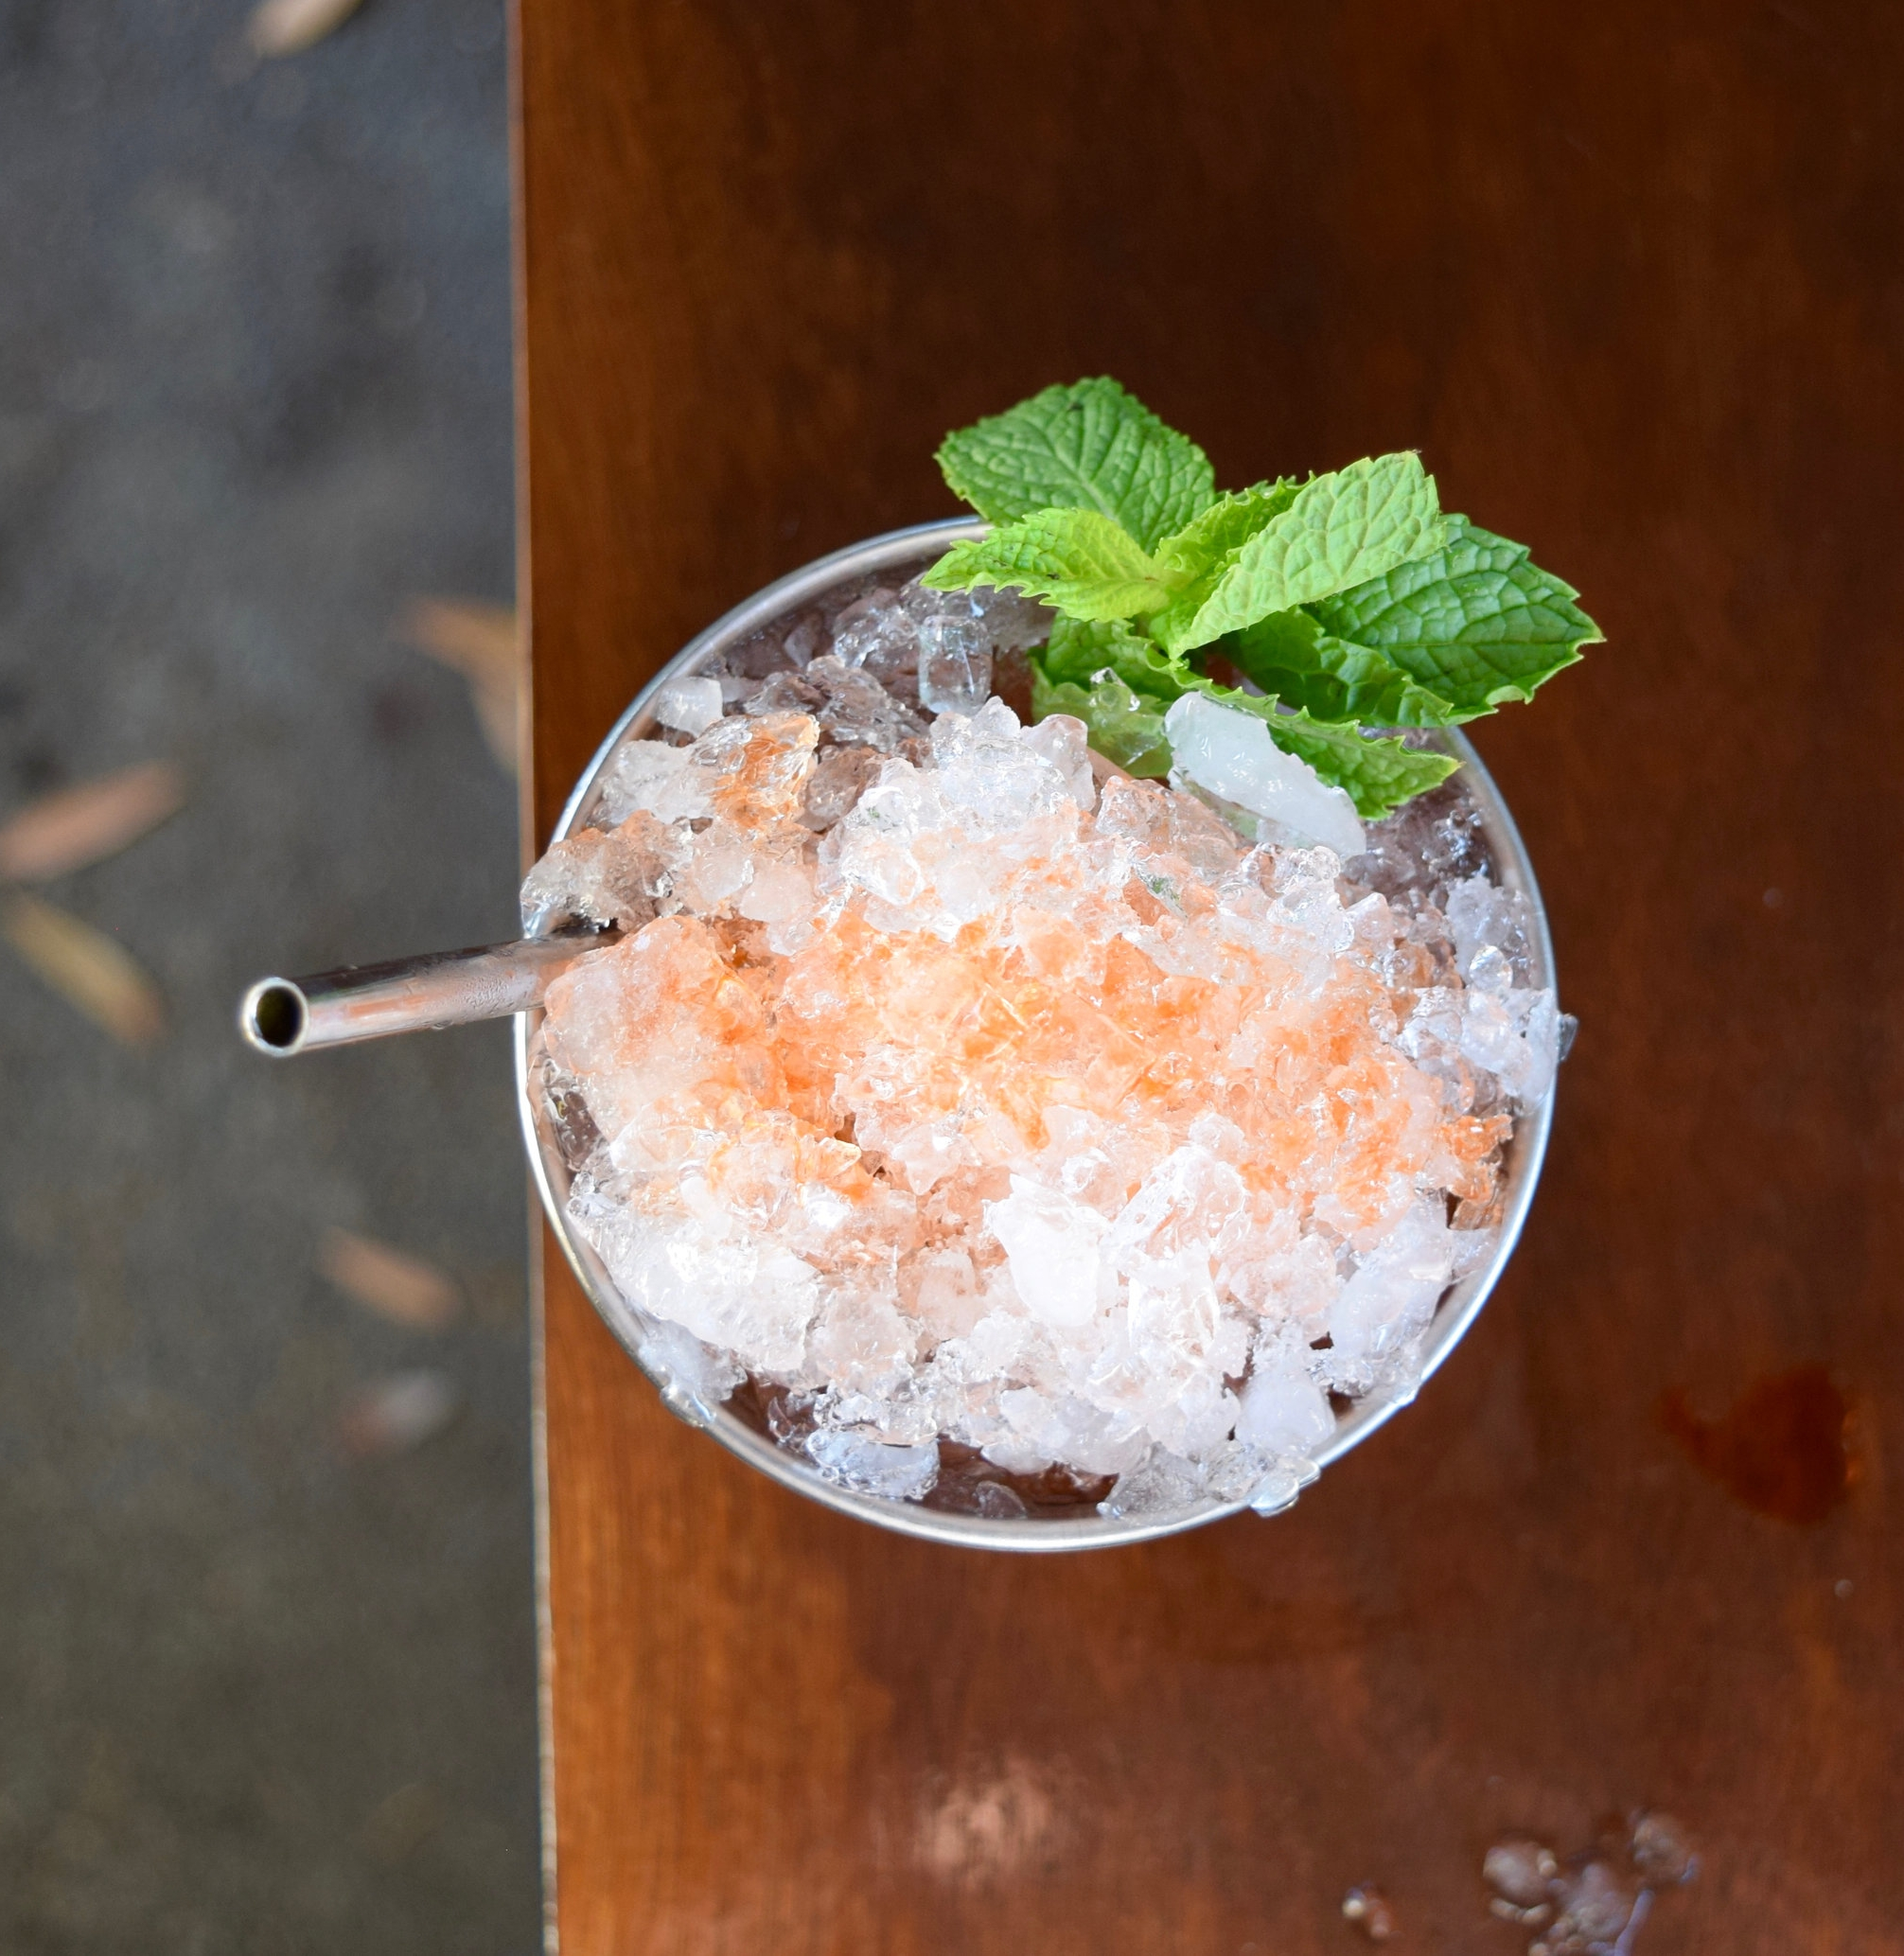 WHEN THE LEVEE BREAKS - 2 oz bourbon or rye whiskey1/2 oz nostrum pineapple turmeric ginger shrub1/2 oz fresh lemon juice1/4 oz demerara syrup8 mint leaves2 dashes angostura bittersShake with ice and strain. Top with bitters.